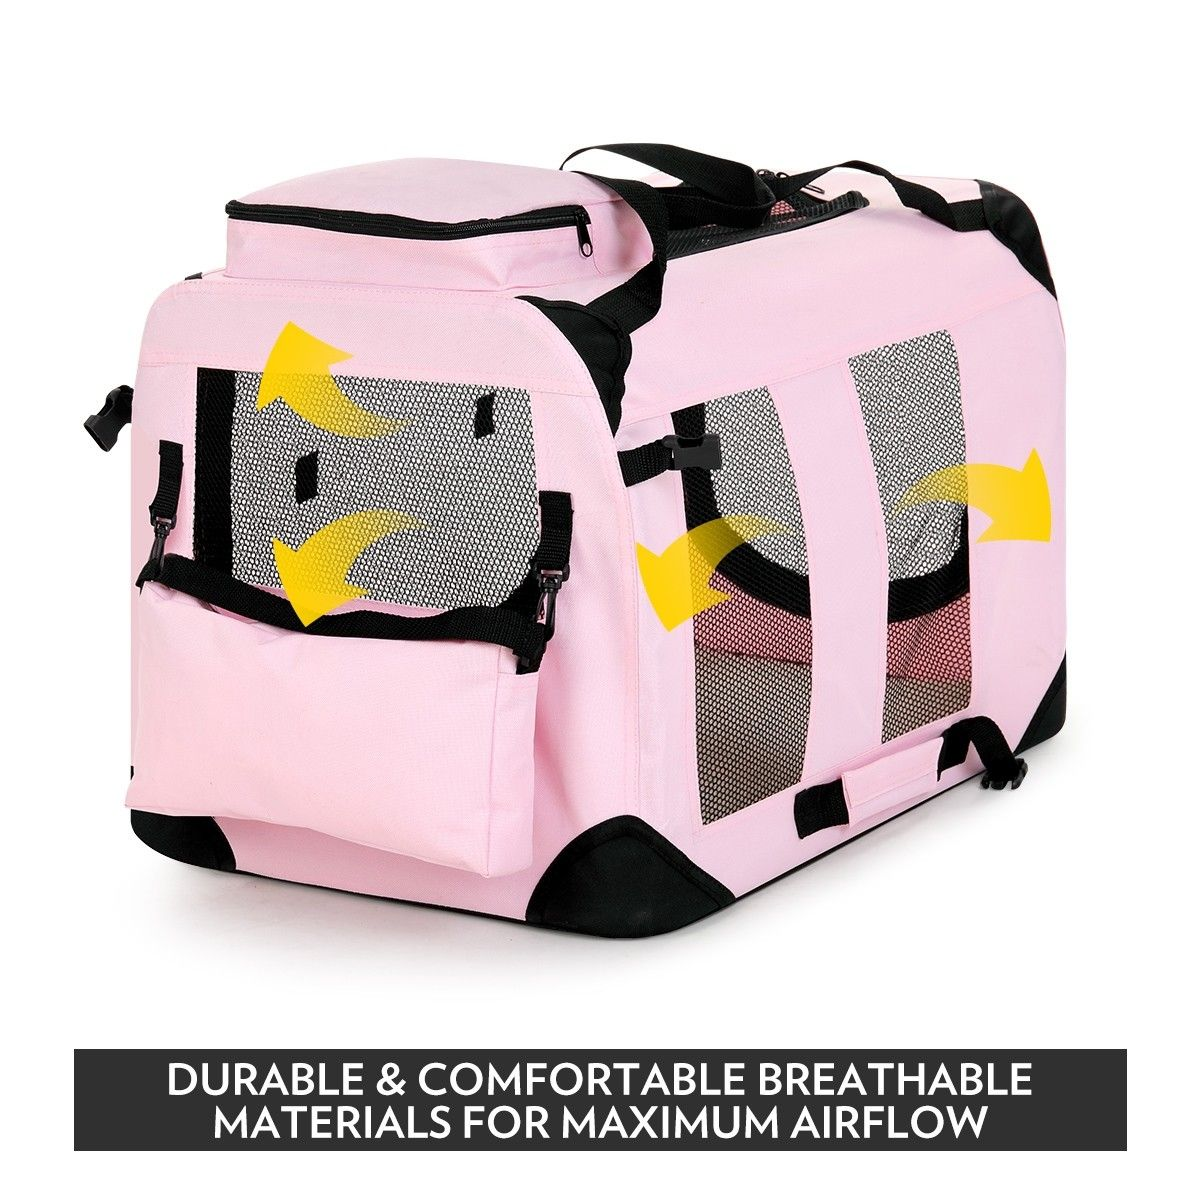 Portable foldable soft dog crate xl pink buy fabric for Xl soft dog crate